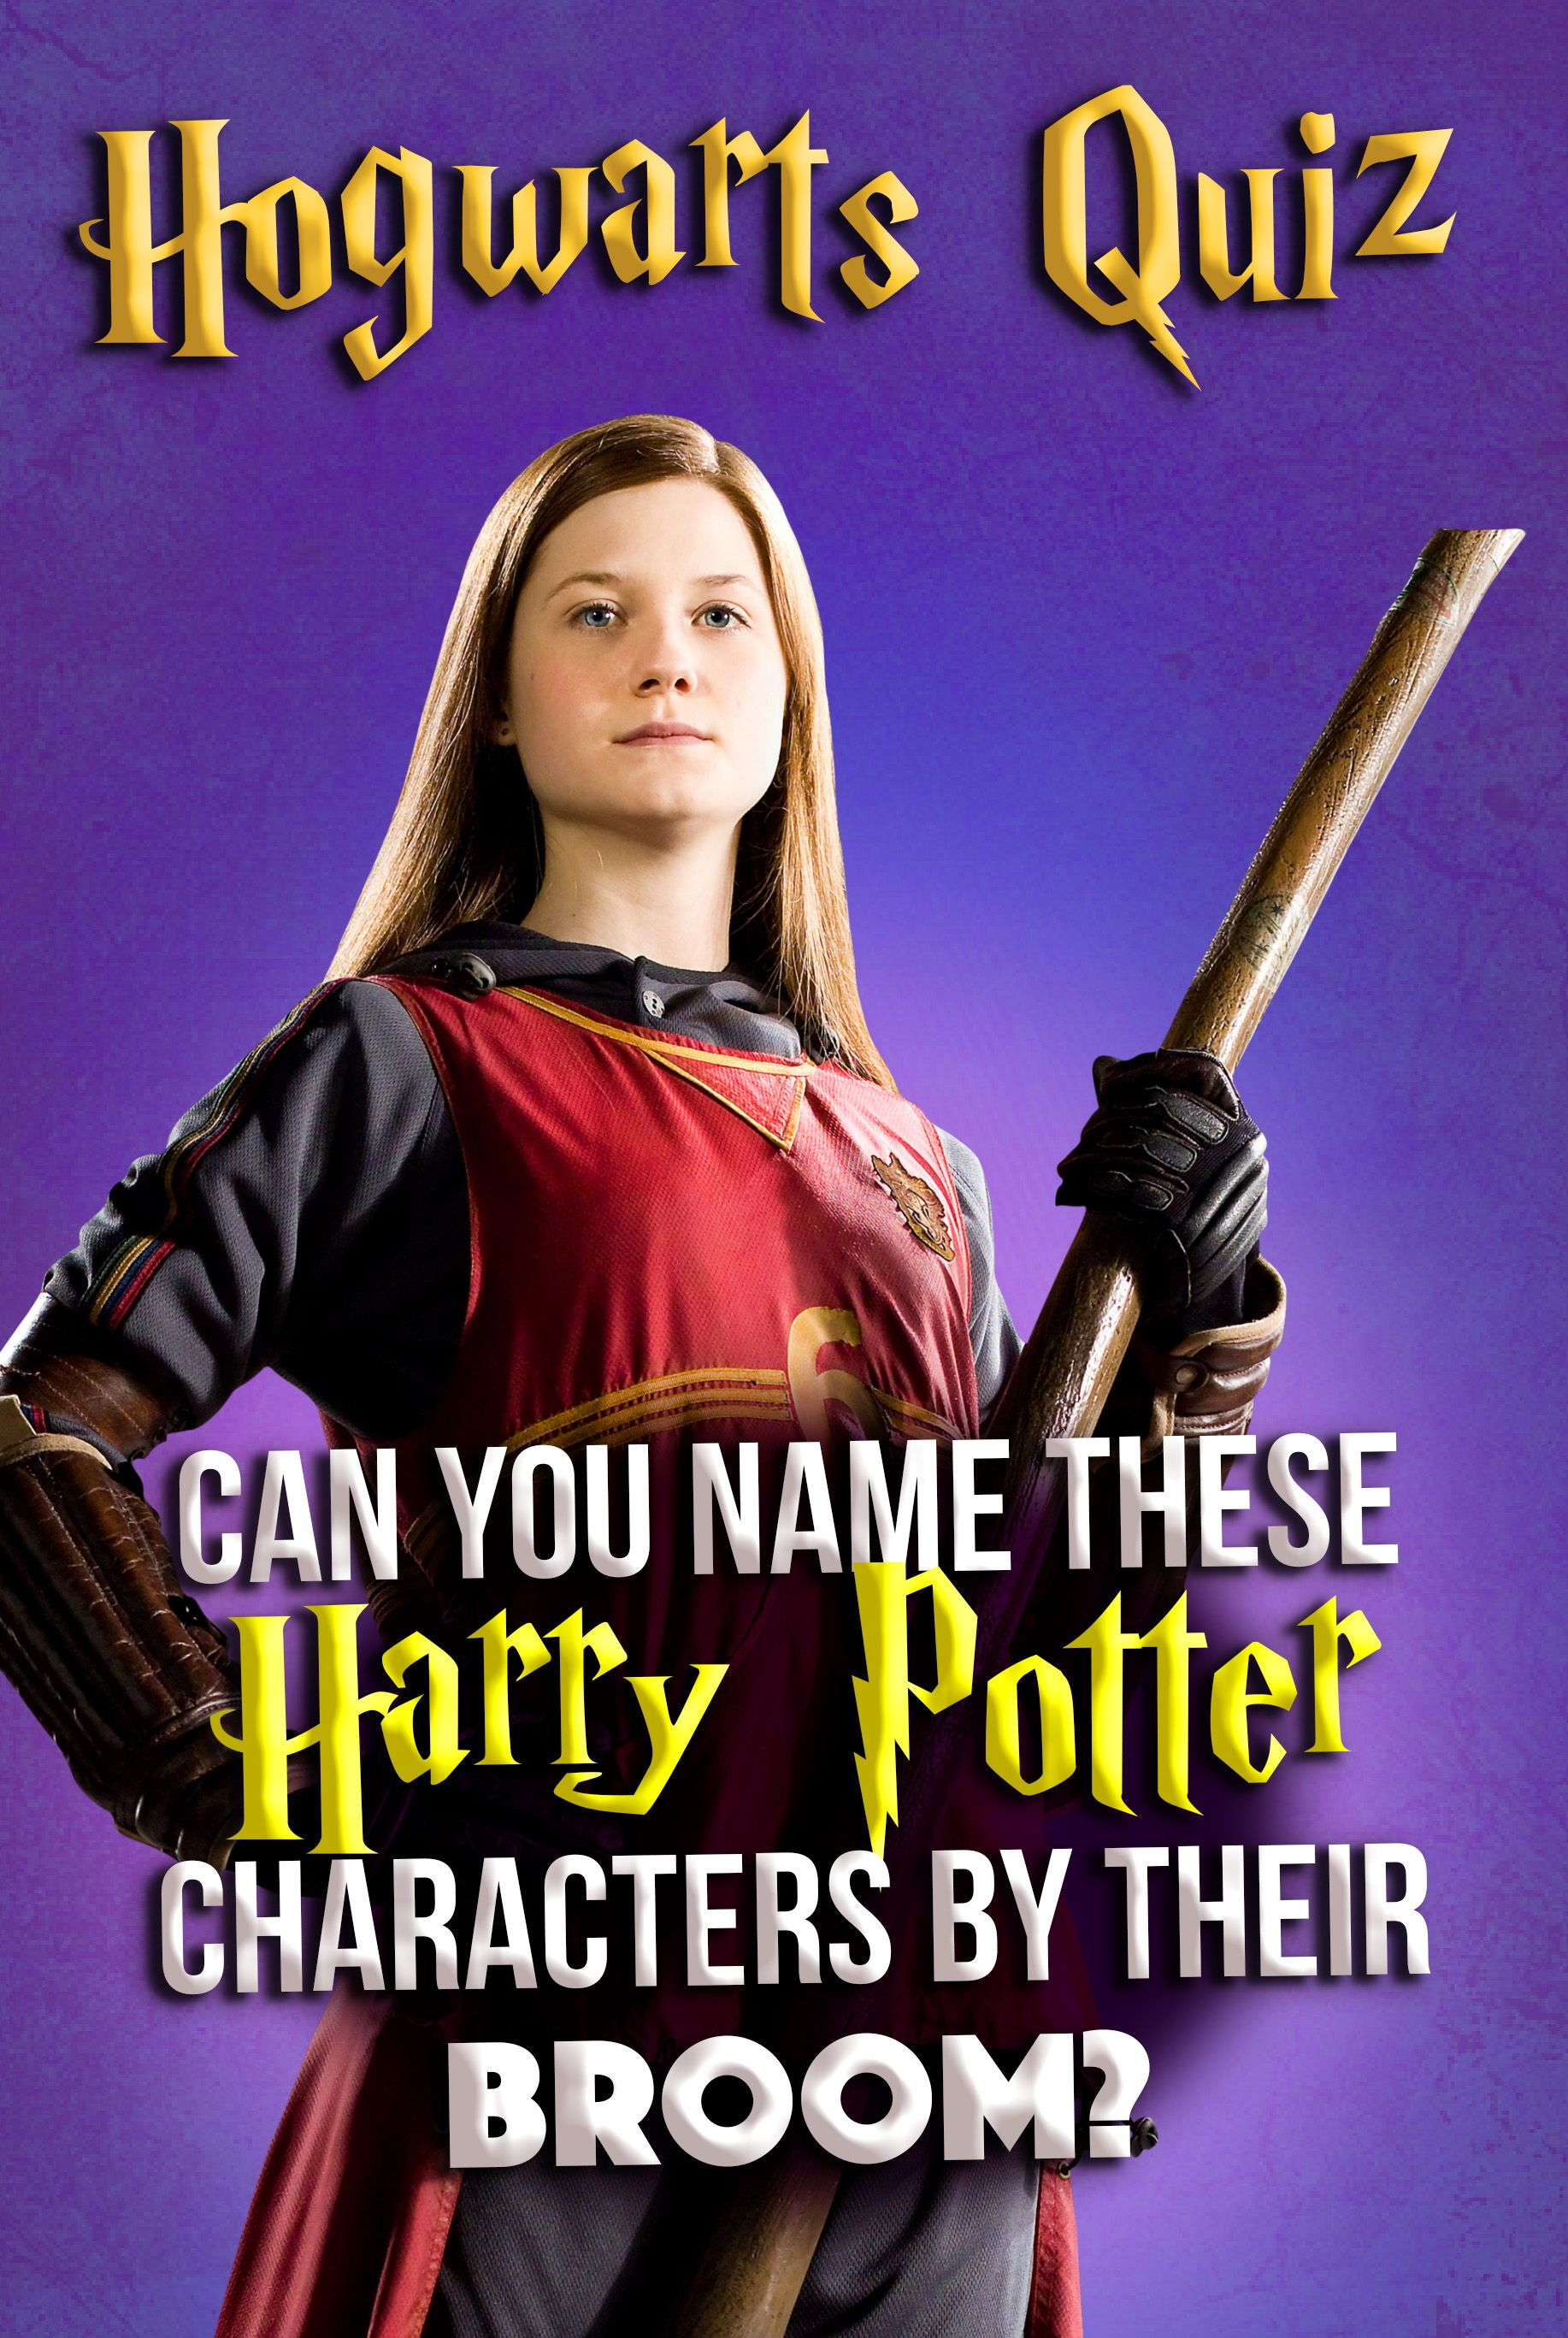 Hogwarts Quiz Can You Name These Harry Potter Characters